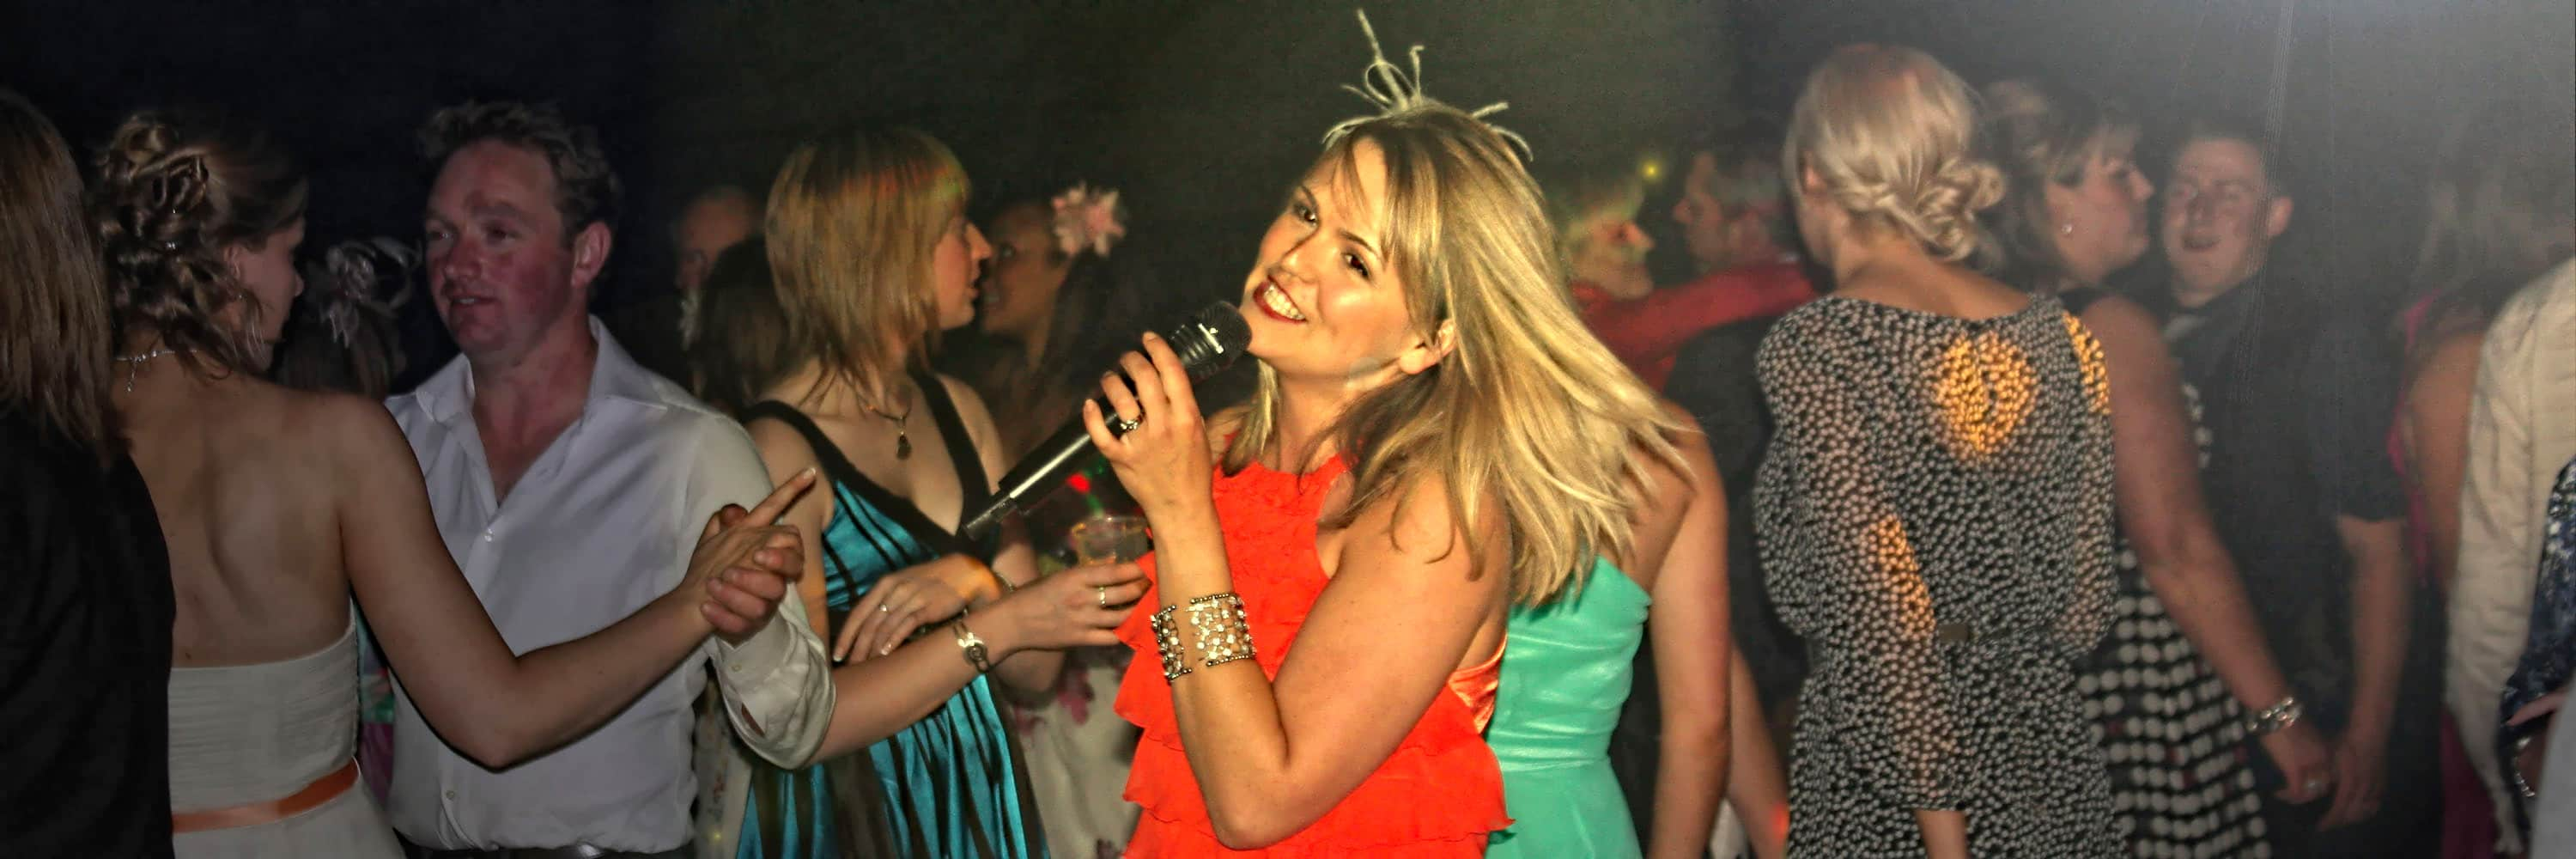 Janice Lacey UK Wedding Live Singer Entertainment & DJ